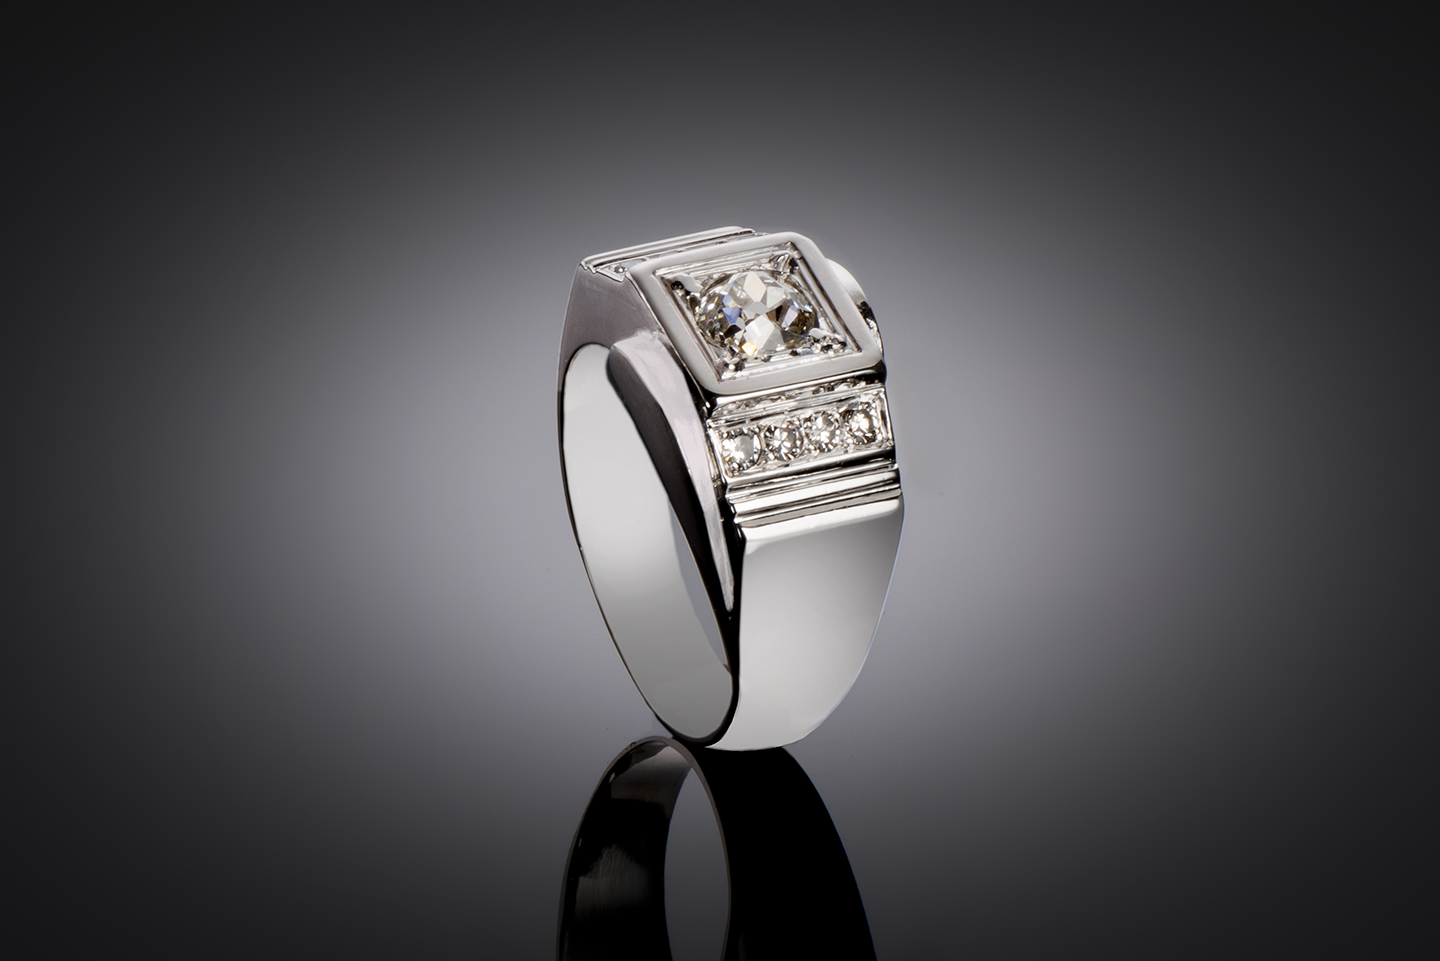 Bague moderniste vers 1935 diamants (1,30 carat)-1